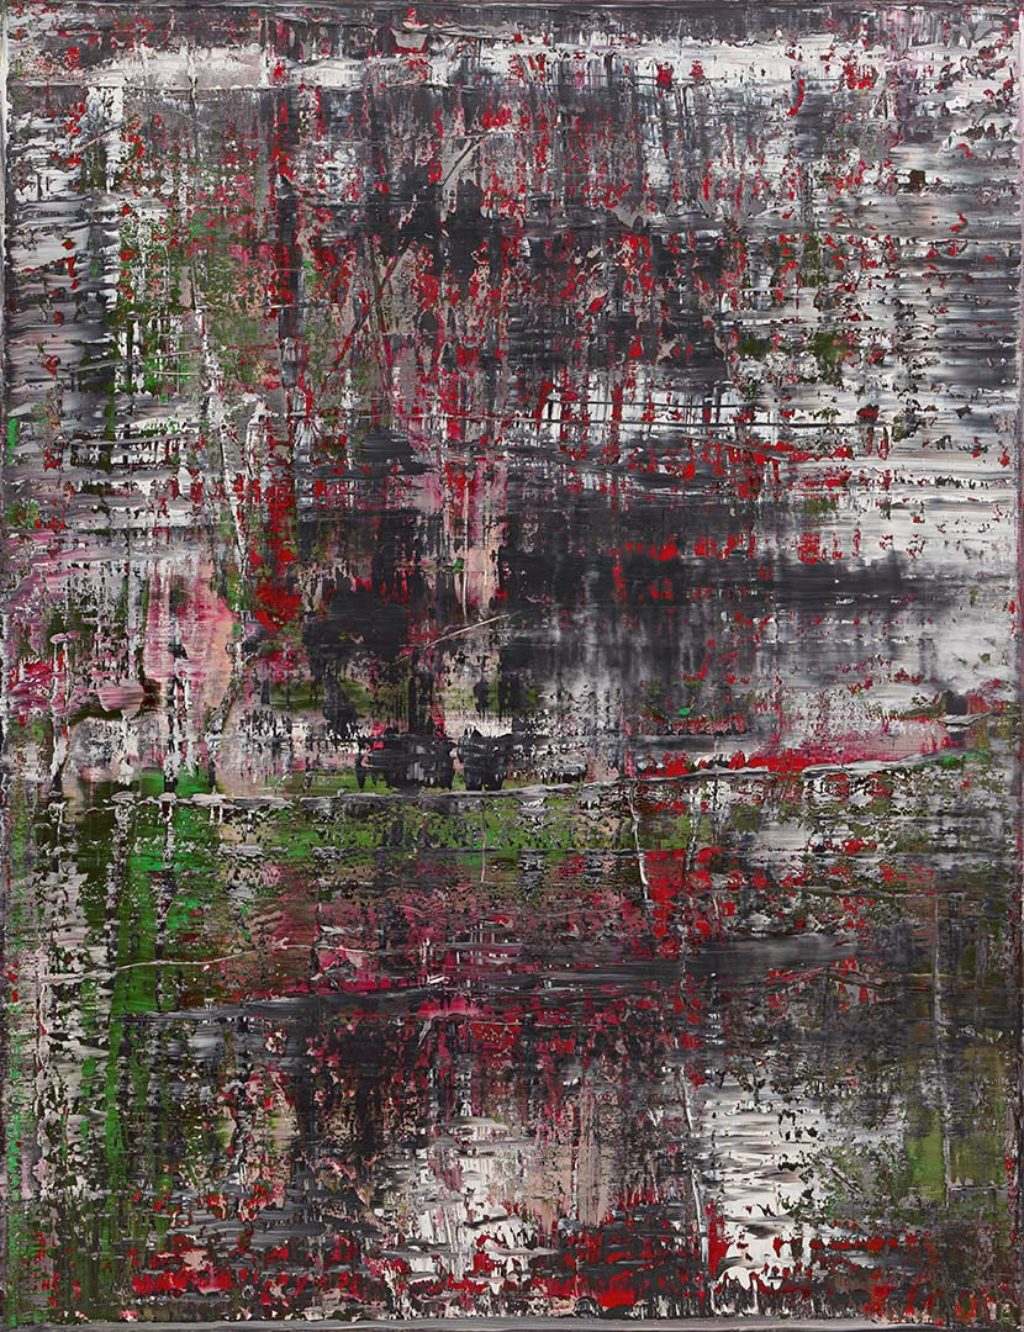 Painting by Gerhard Richter